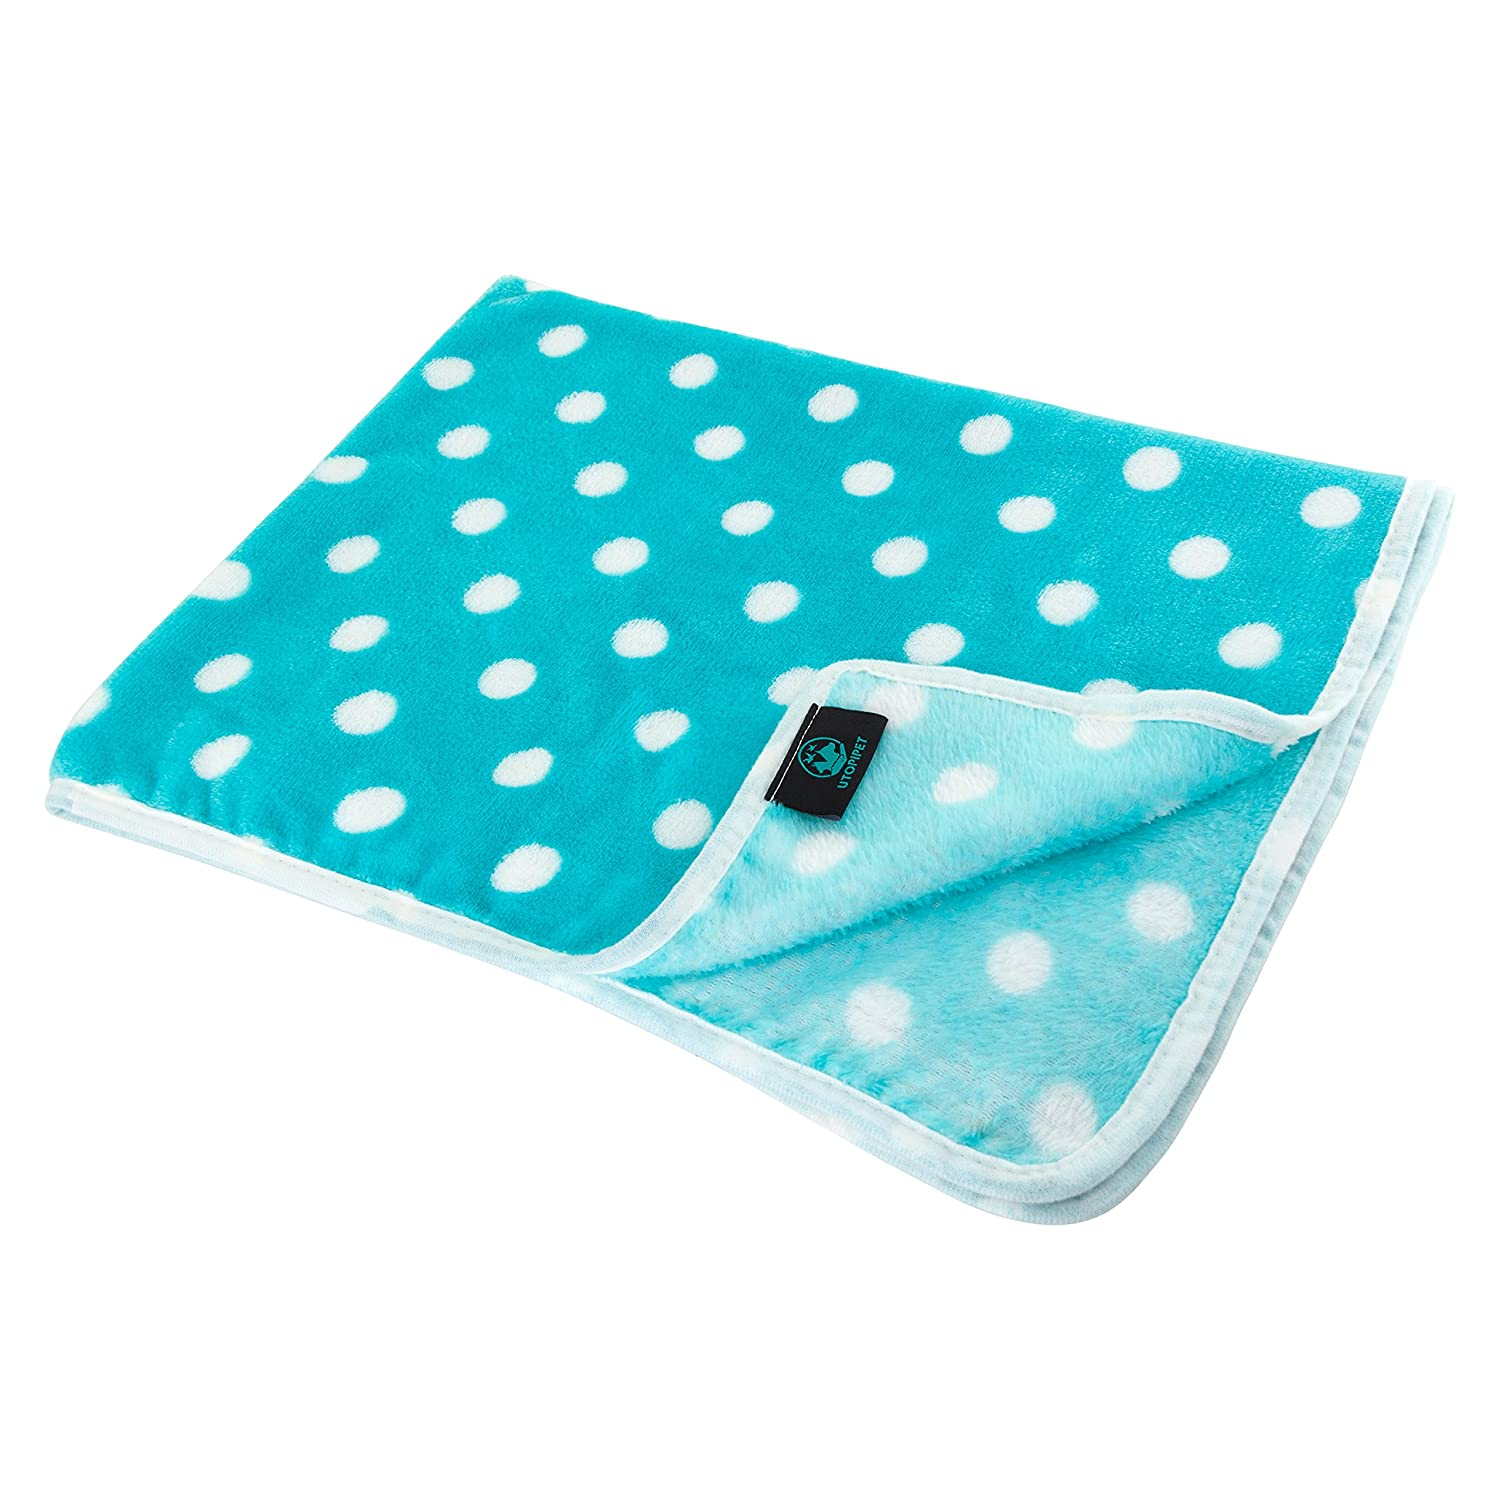 UTOPIPET Multi-Pack of 3 Pet Blankets for Dog Cat Animal 35 x 27 Inches Fleece Polka Dot Design All Year Round Puppy Kitten Bed Warm Sleep Mat Fabric Indoors Outdoors